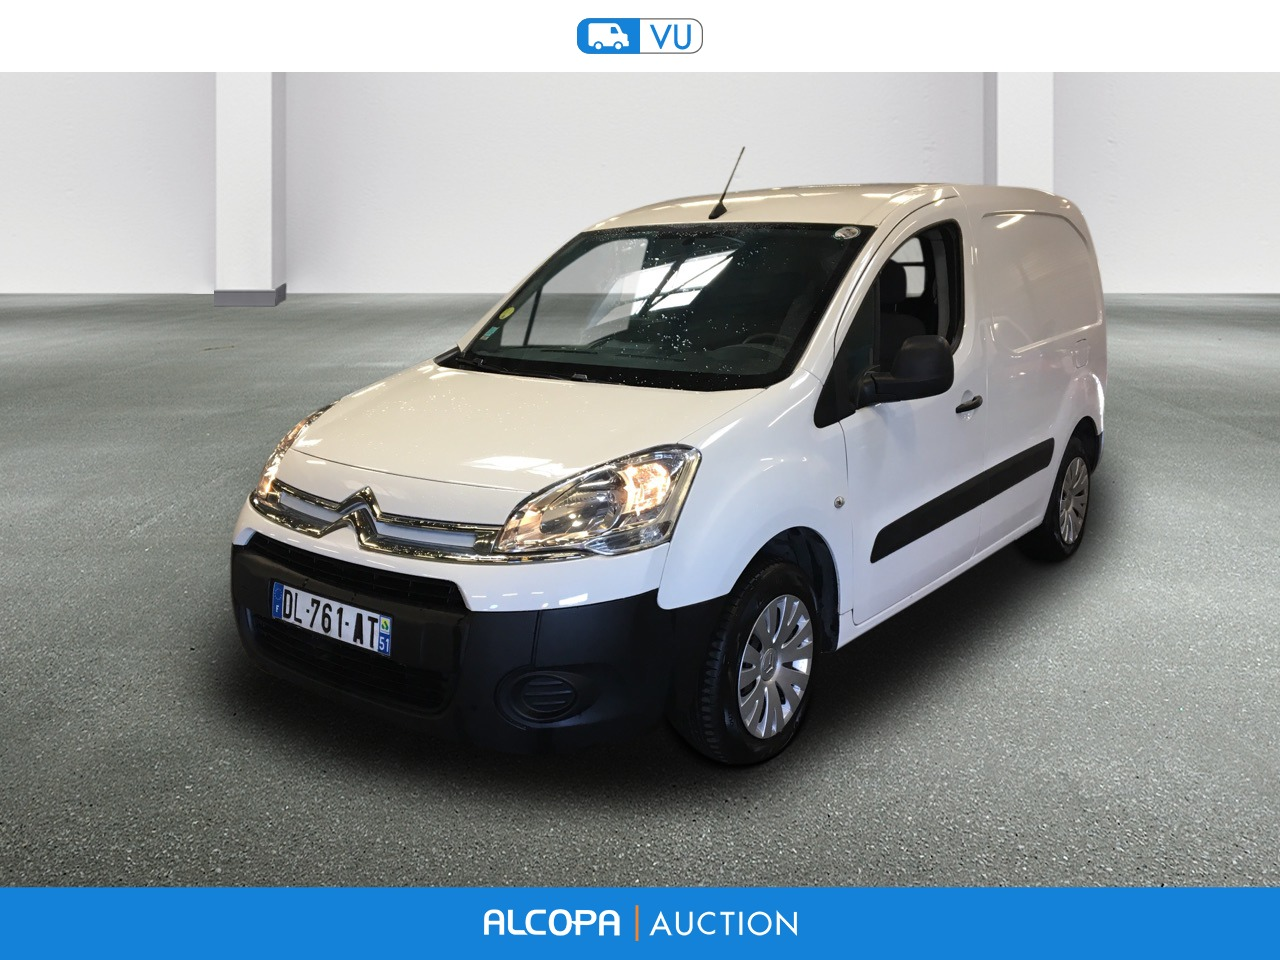 citroen berlingo fourgon berlingo 20 l1 hdi 75 business alcopa auction. Black Bedroom Furniture Sets. Home Design Ideas